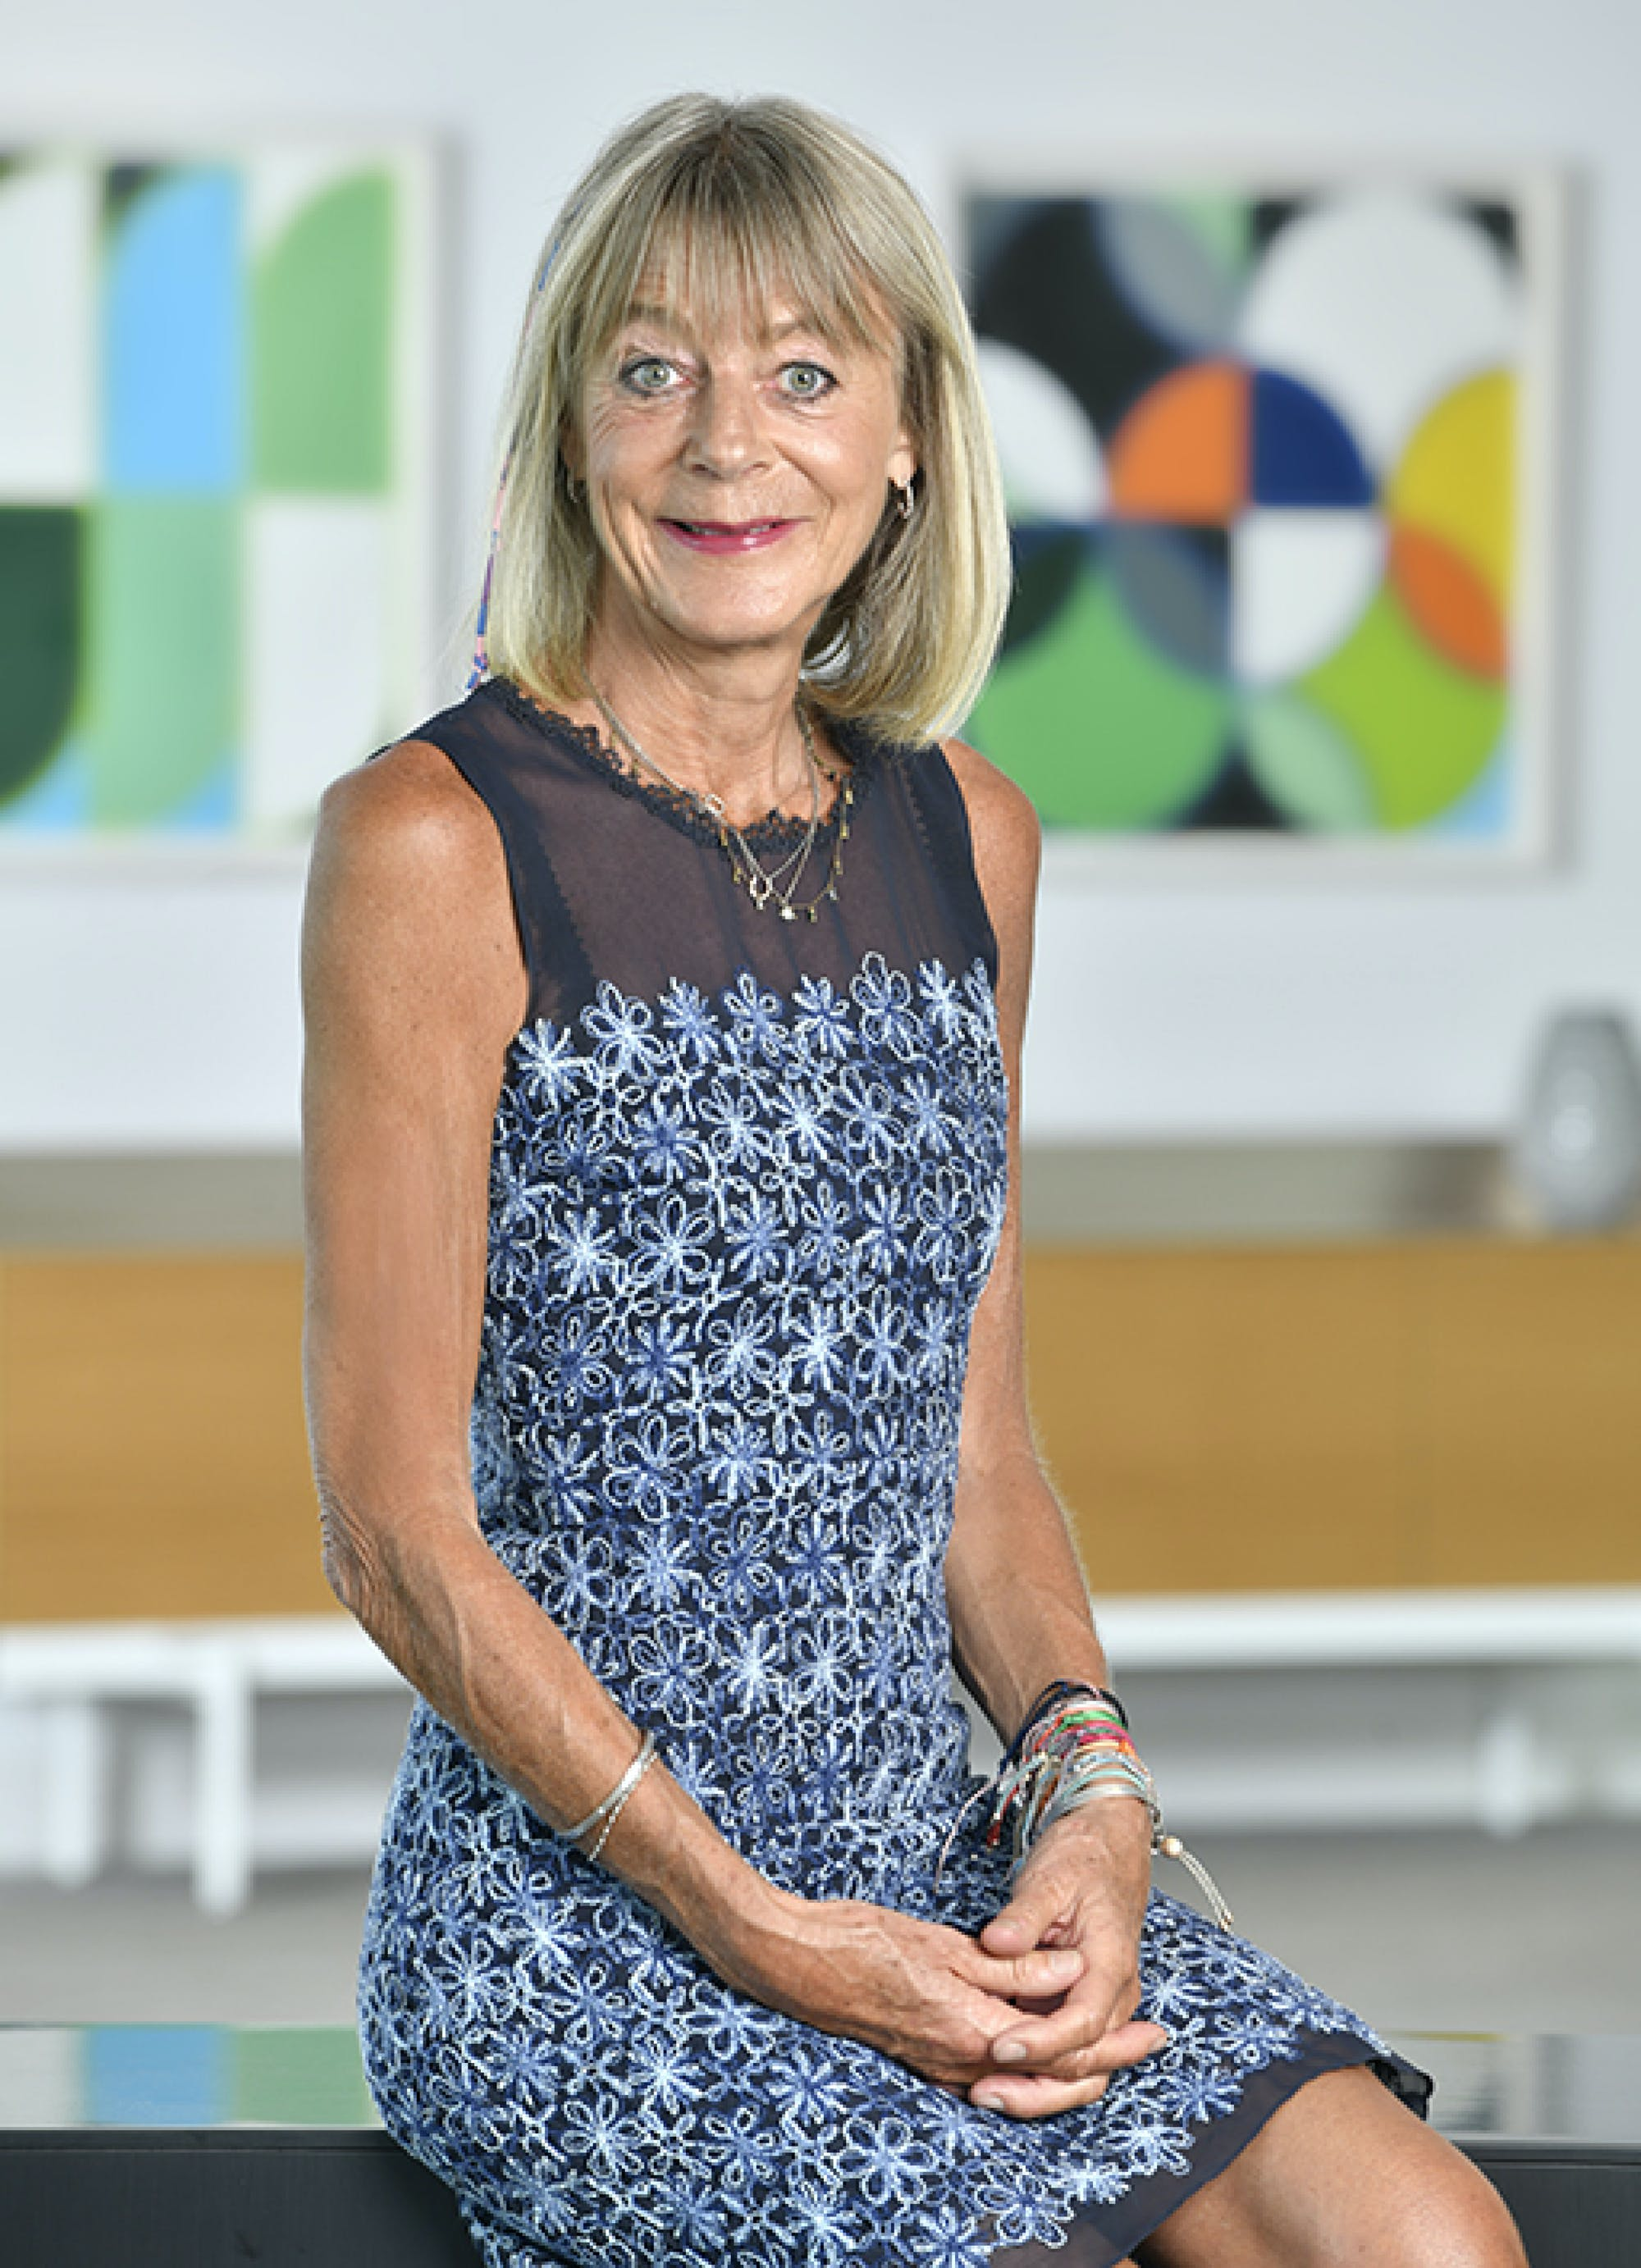 Sustainability Tackling Climate Change and Biodiversity | An interview with Sue Fox, President, The Estée Lauder Companies UK & Ireland